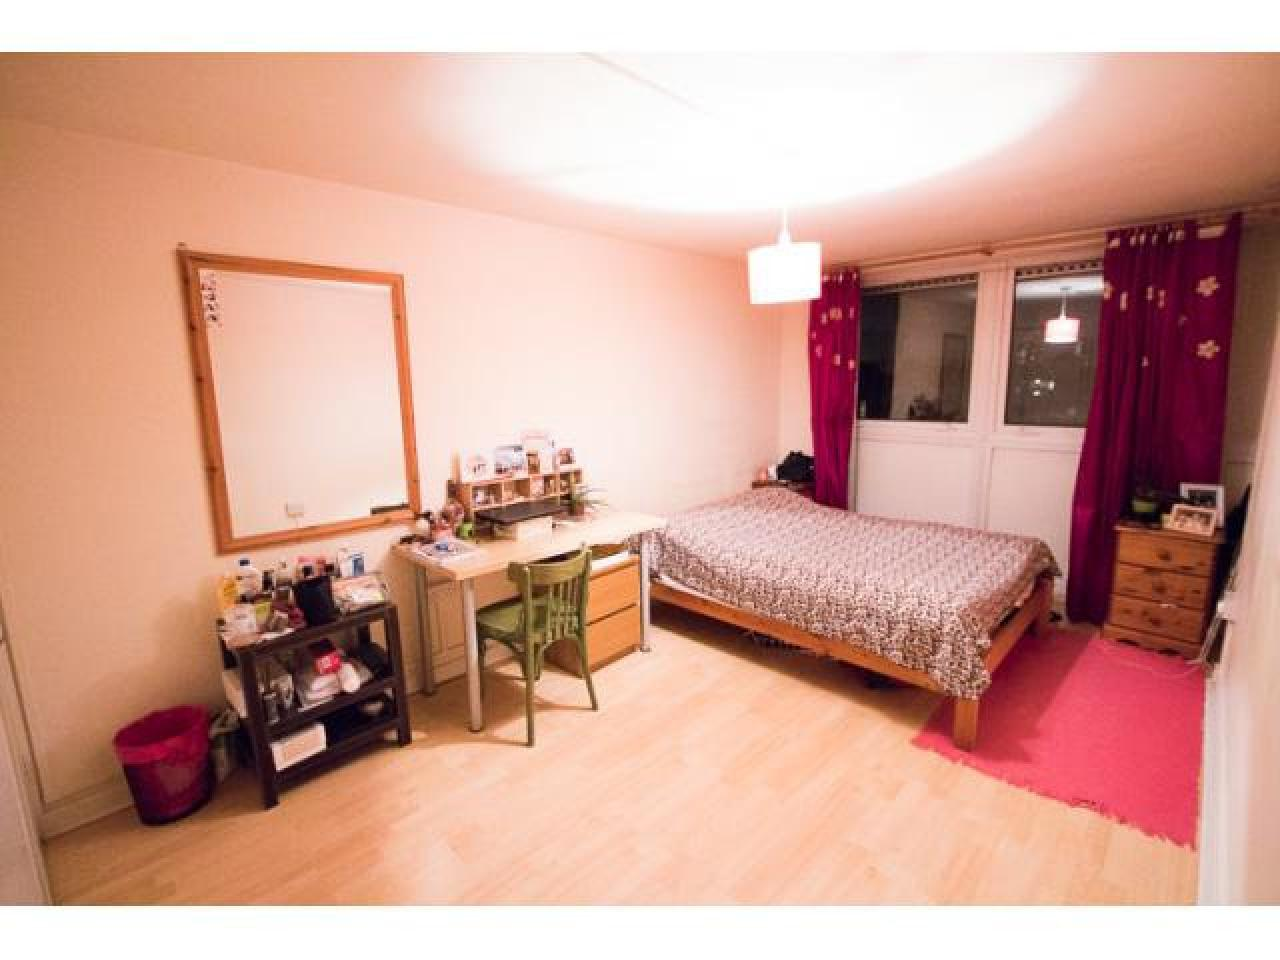 Double комната в аренду, £580/month, all bills included, Bethnal Green, London, ladies only - 1